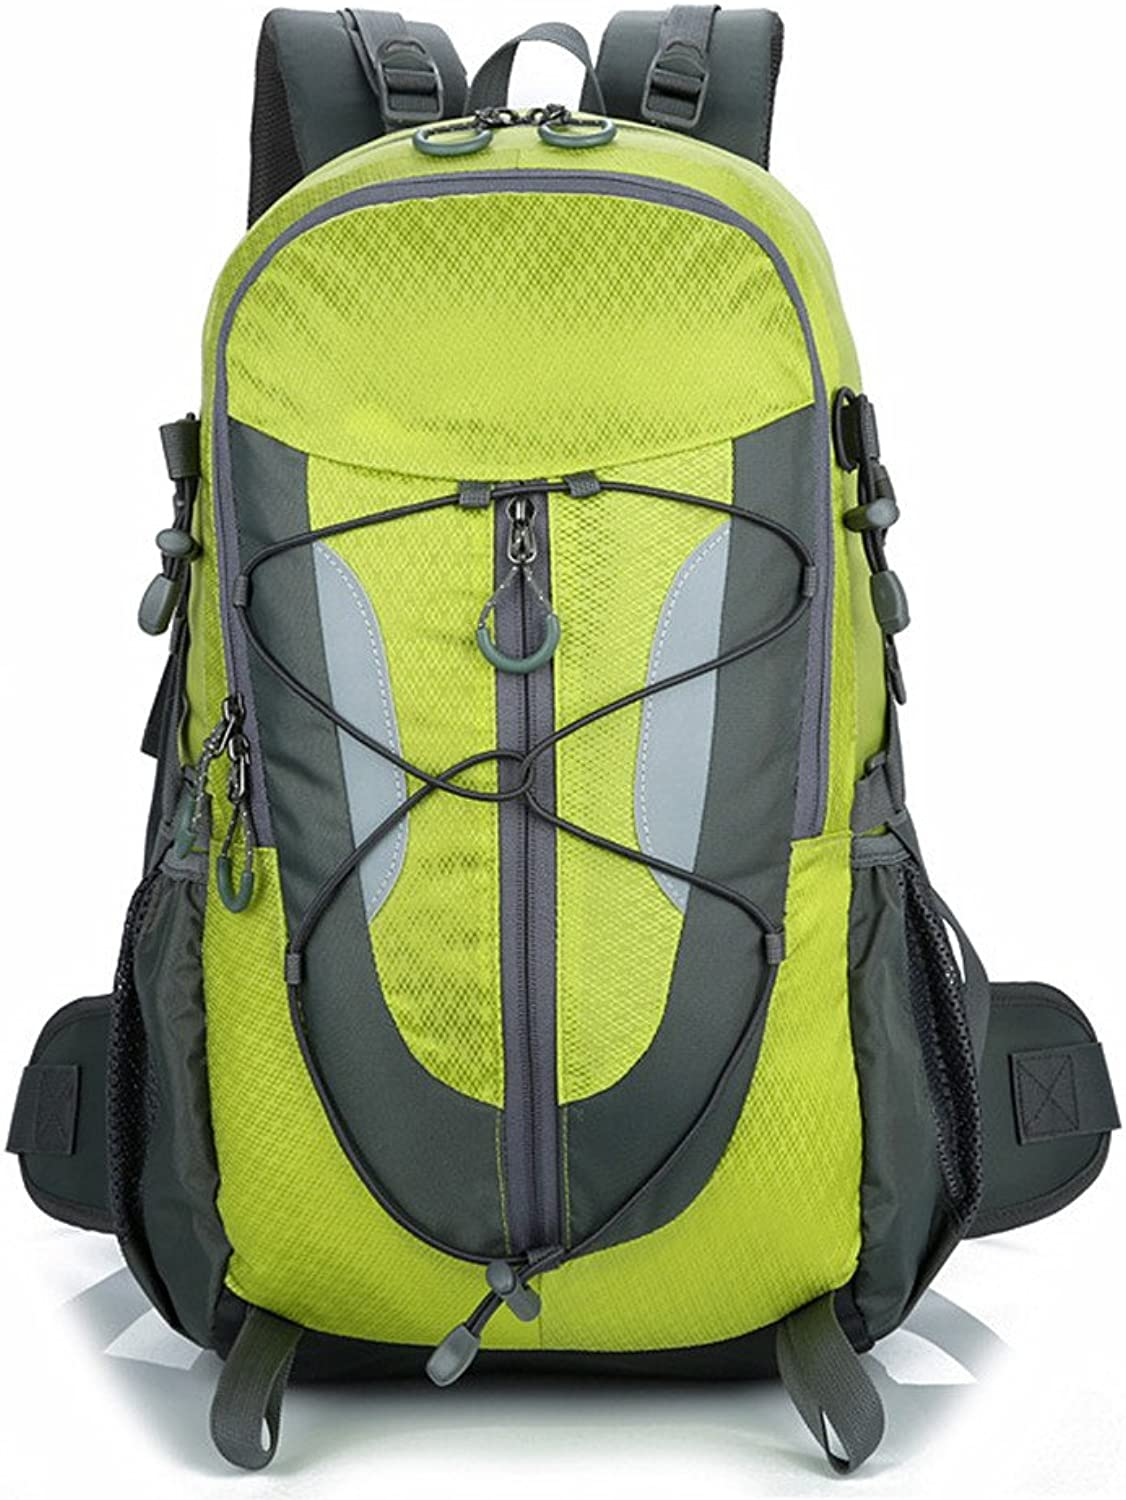 Mountaineering Backpack Waterproof Lightweight Multifunction Leisure Sport Travel by Walking Camping Outside Neutral Men and Women Shoulders Suitable for Outdoor Use (color   Green)